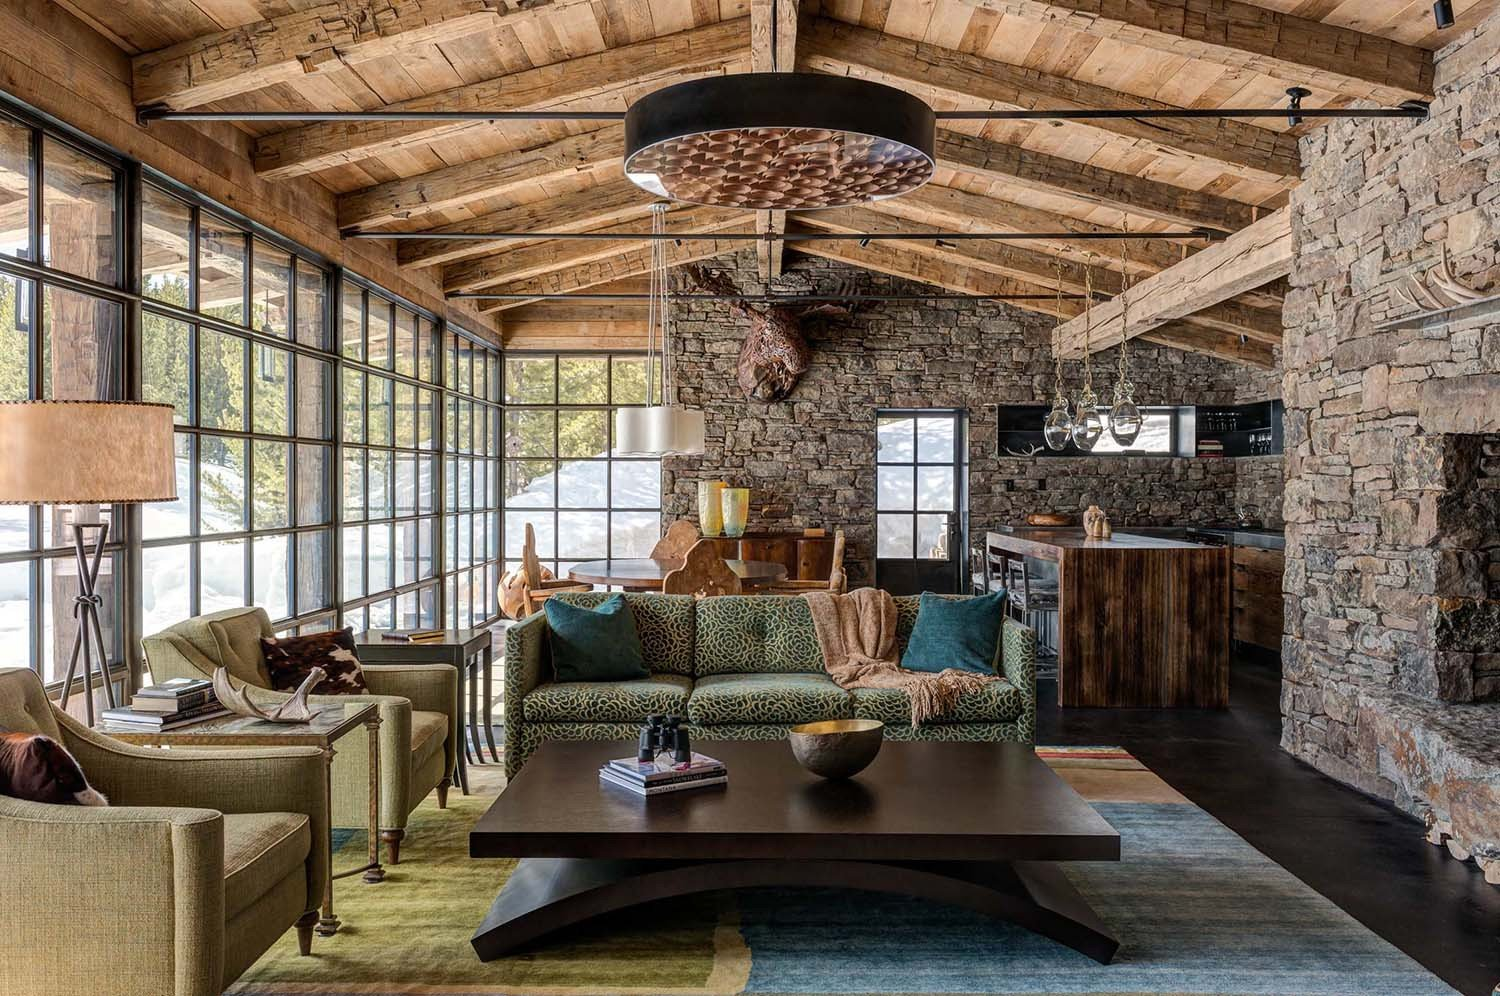 Rustic Living Room Decor Ideas 15 Rustic Home Decor Ideas for Your Living Room